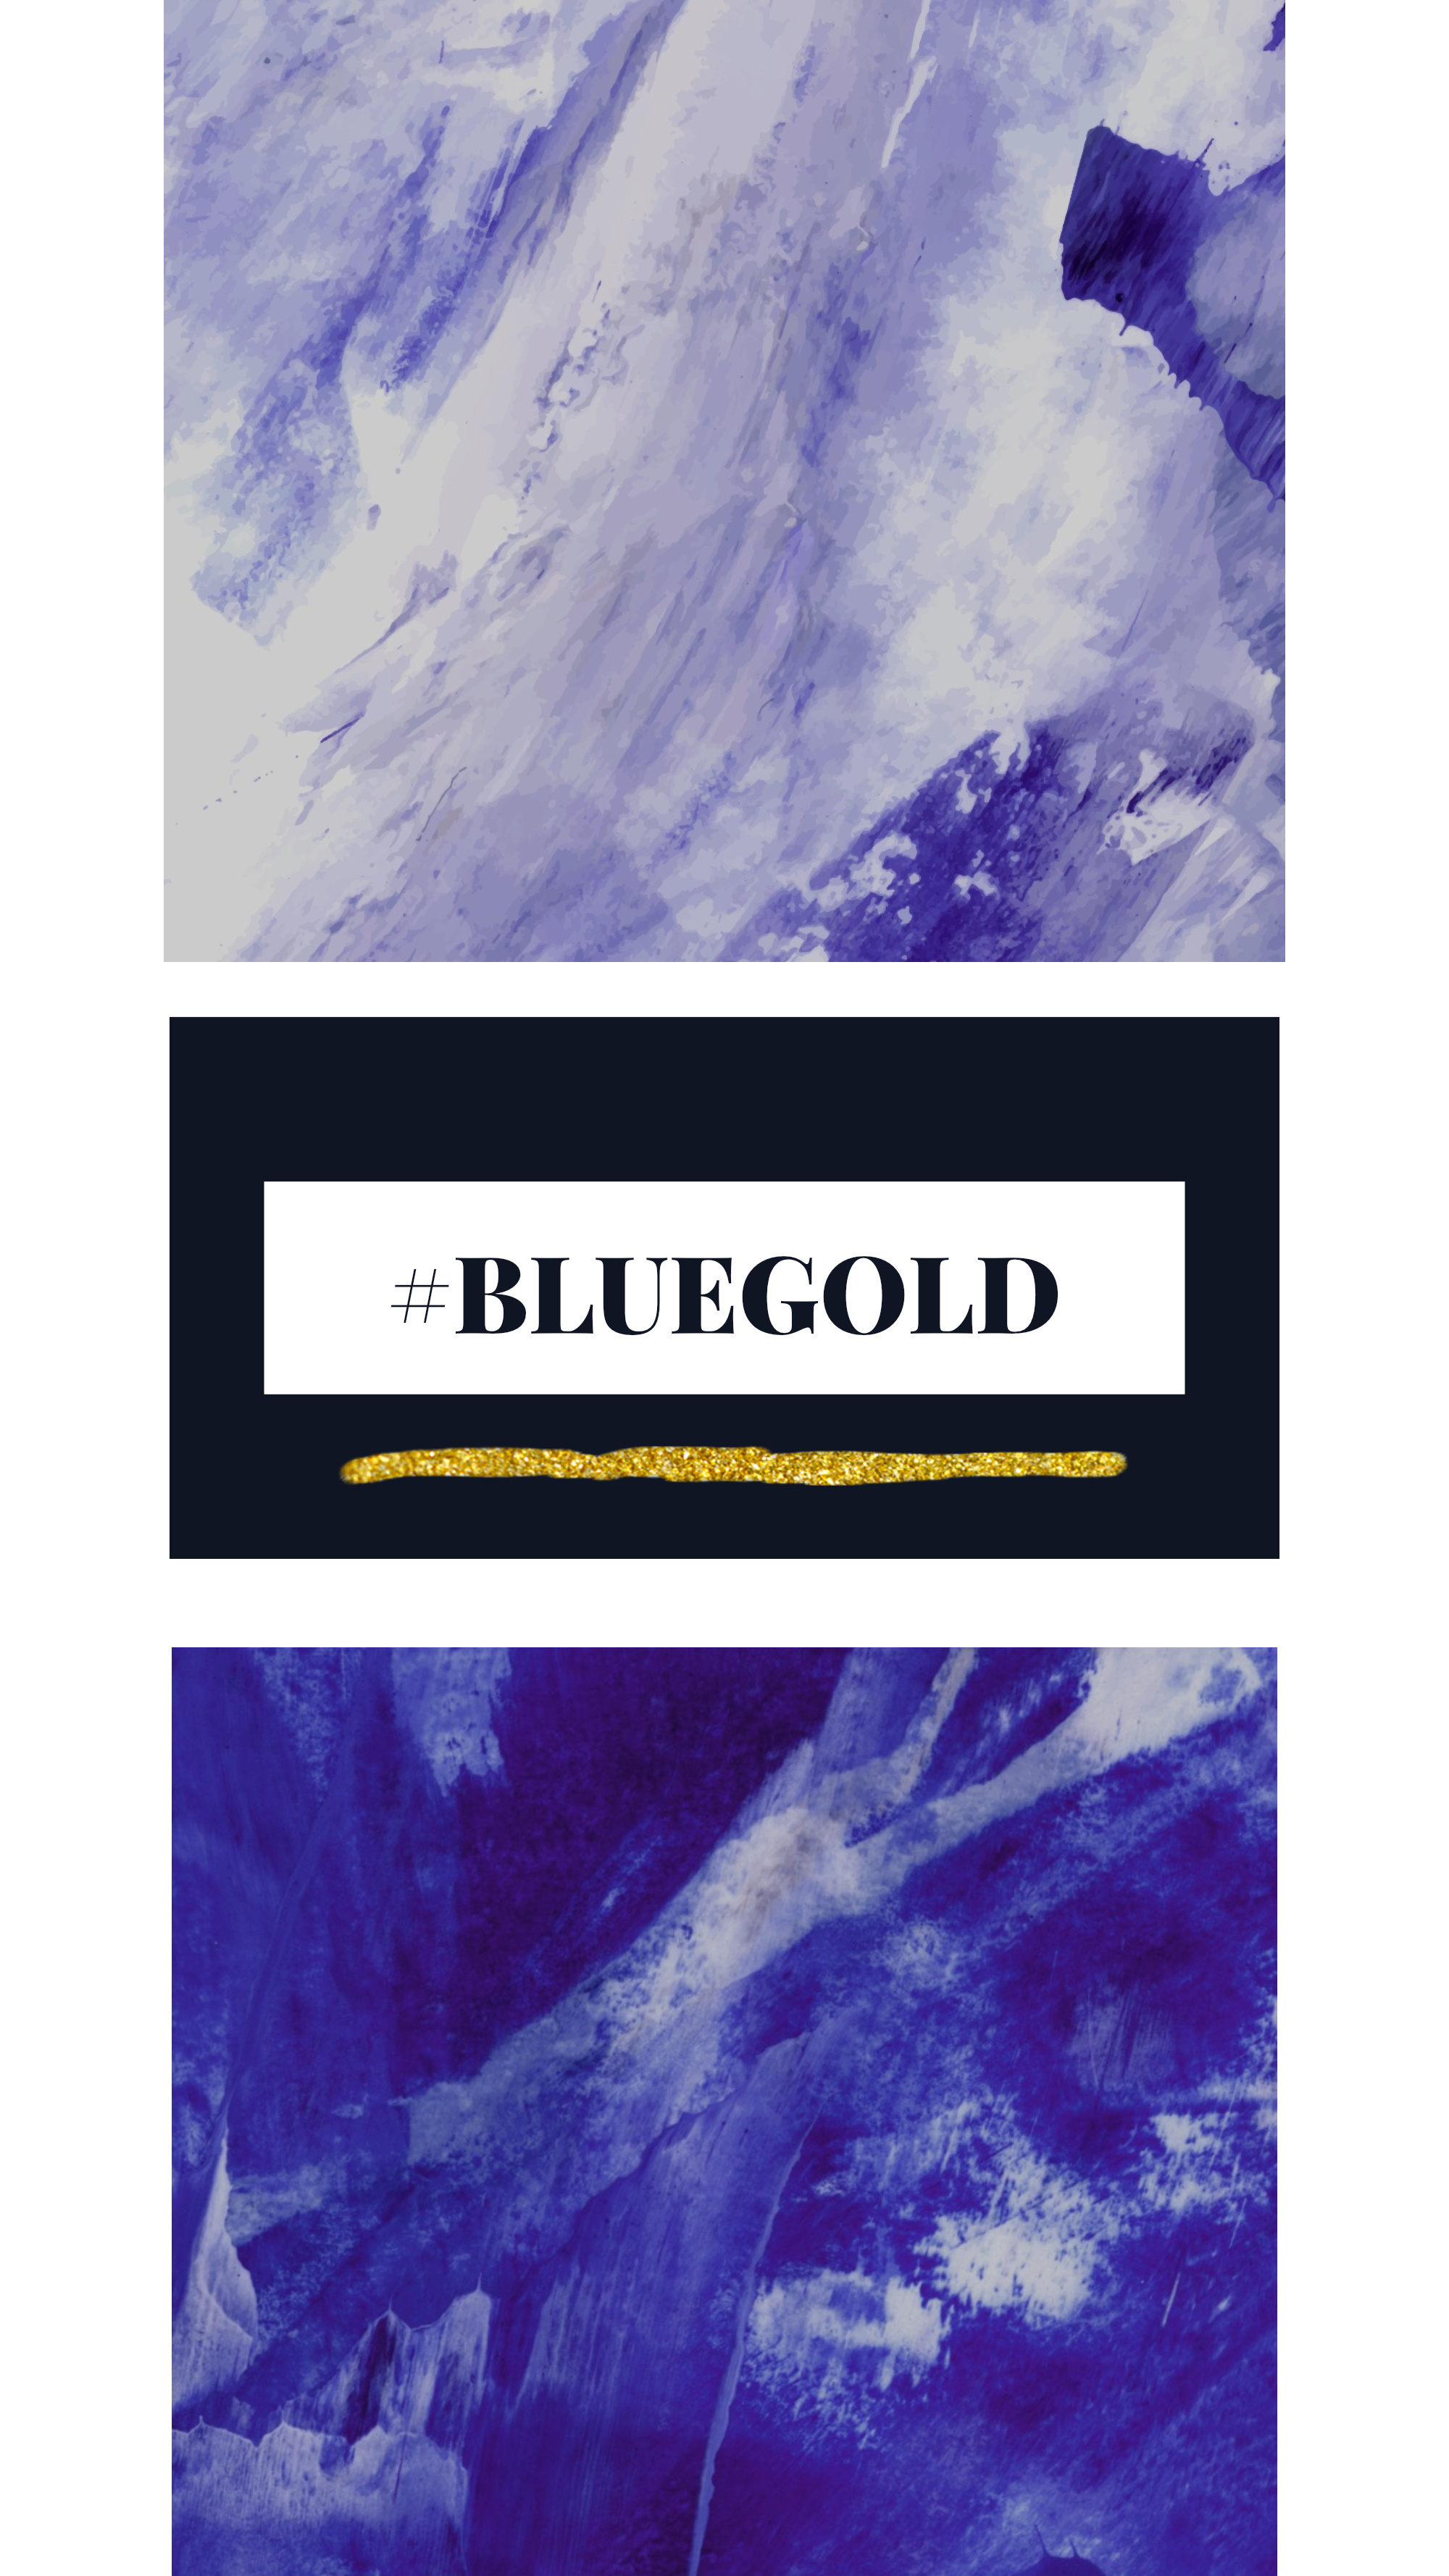 #bluegold collection - #BLUEGOLD Instagram Story Template